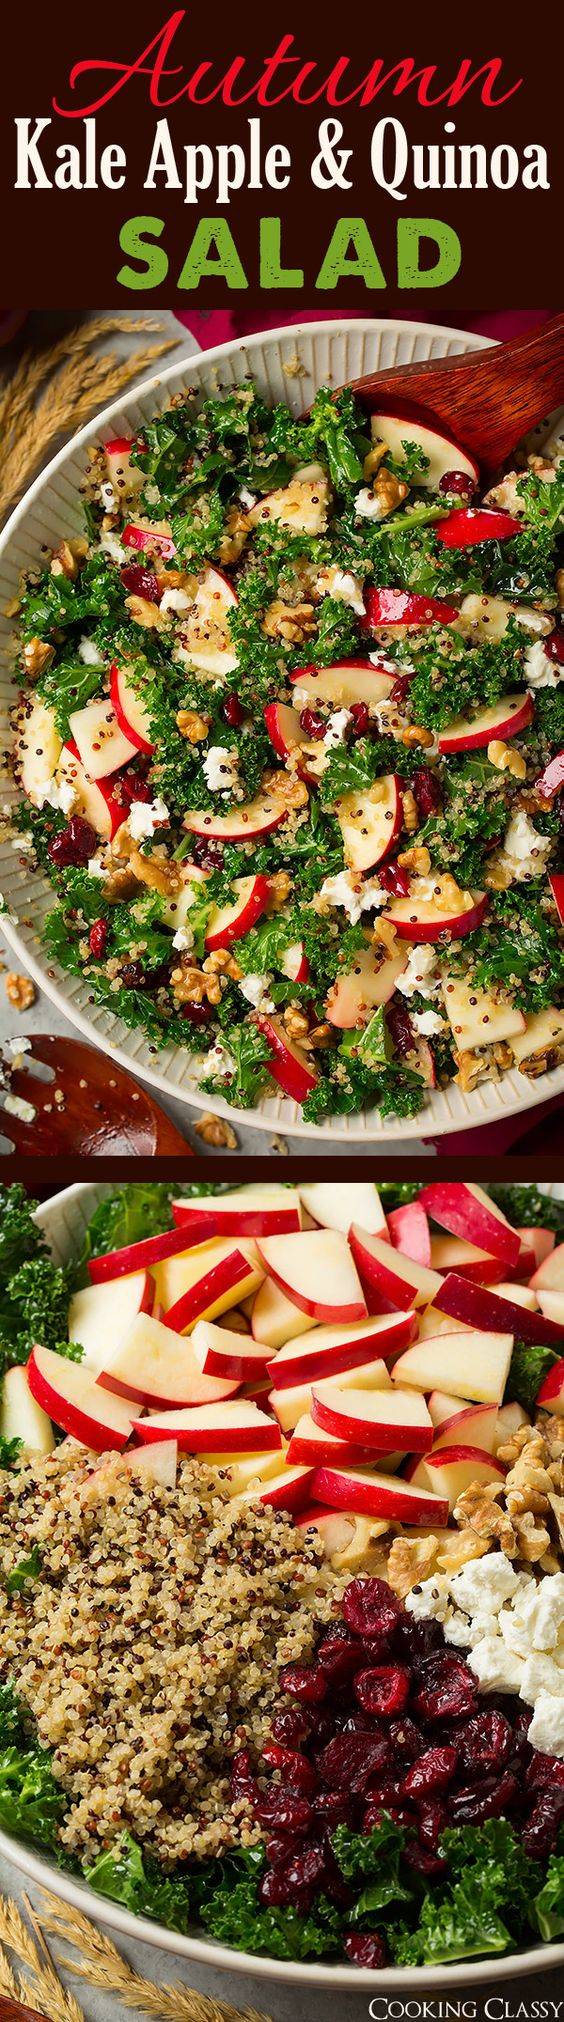 Autumn Kale Apple and Quinoa Salad.